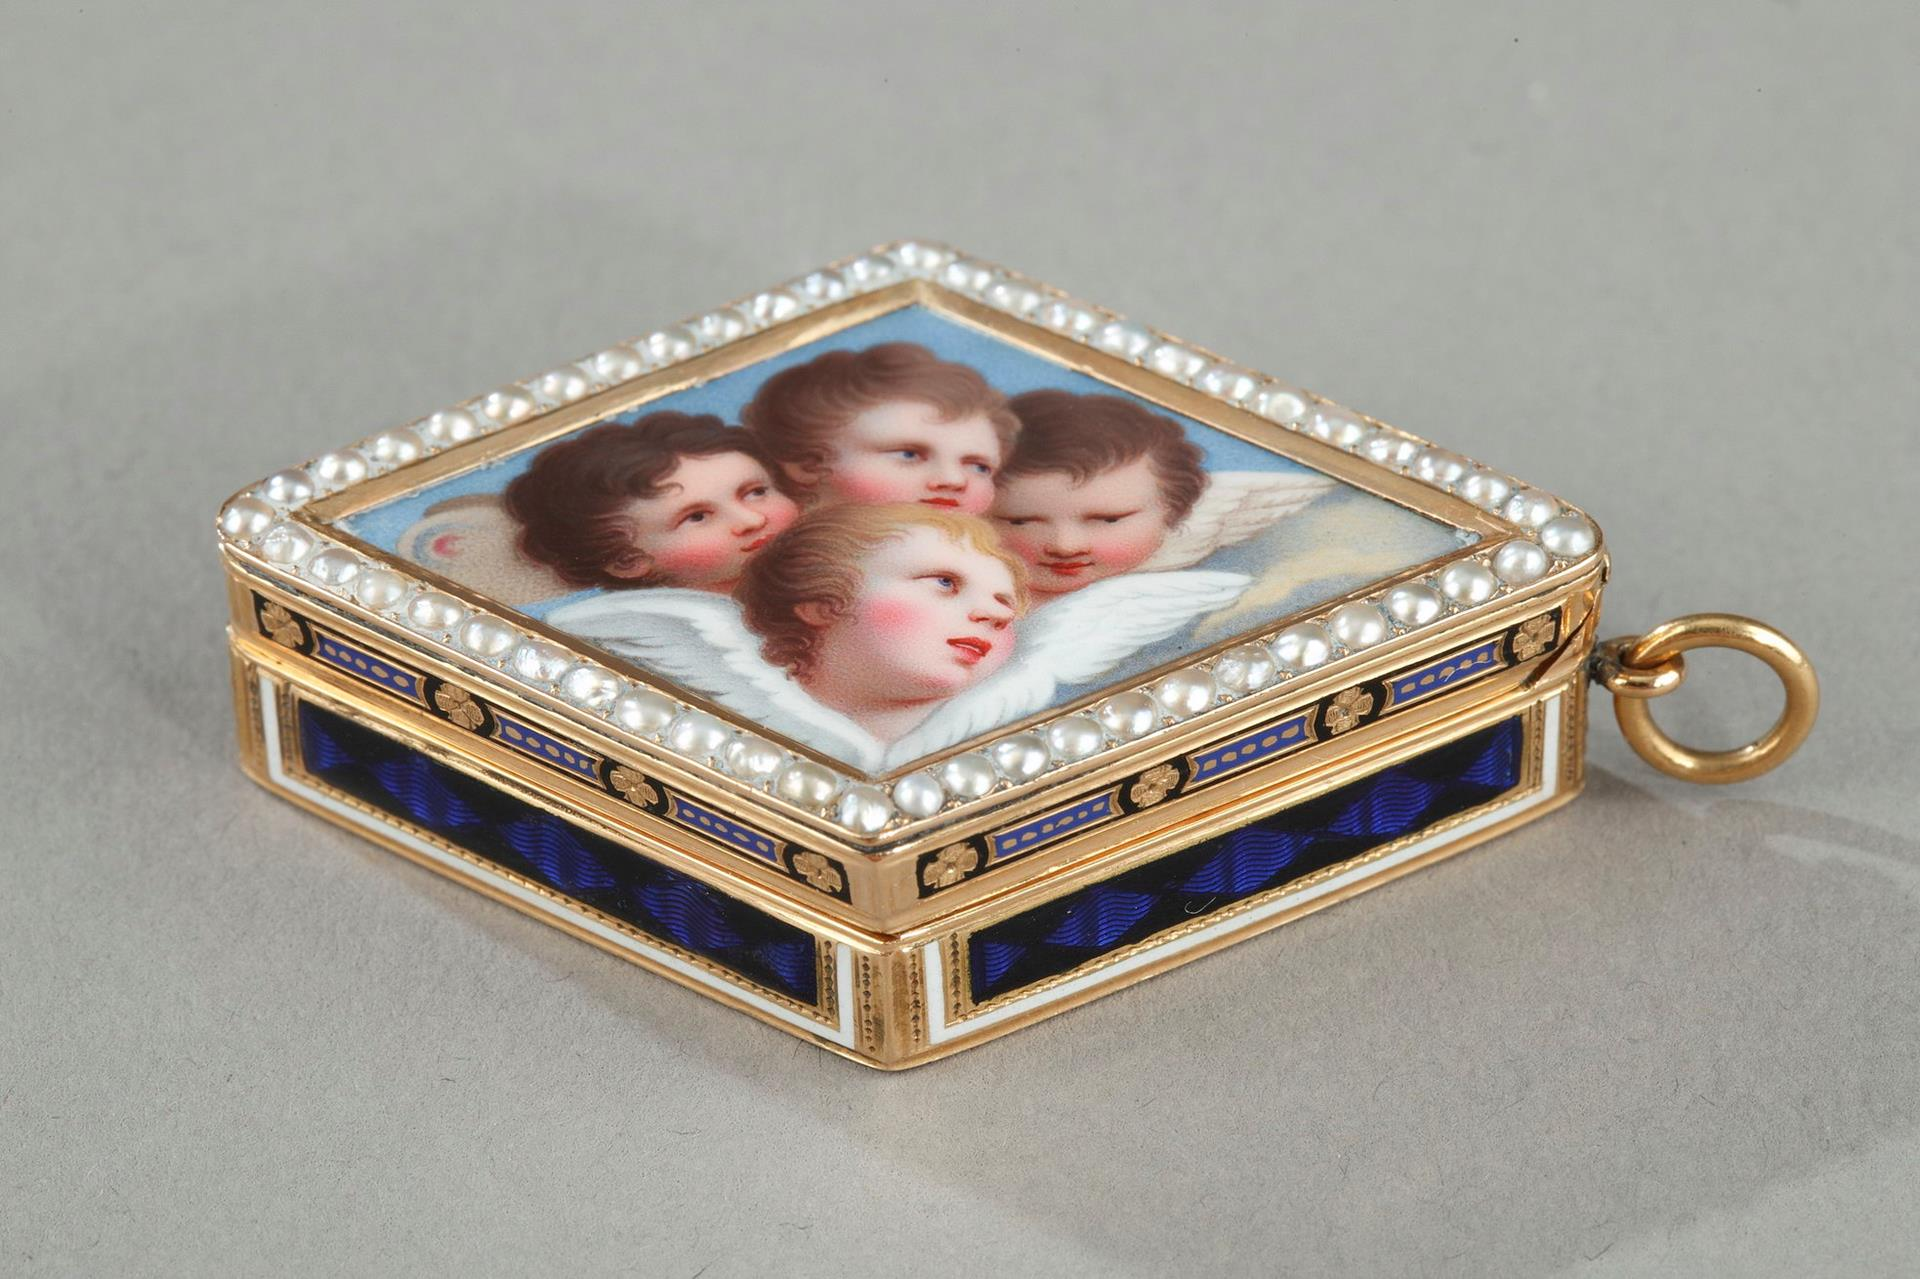 GOLD VINAIGRETTE WITH PEARLS AND ENAMEL.<br/> LATE 18TH CENTURY SWISS WORK.